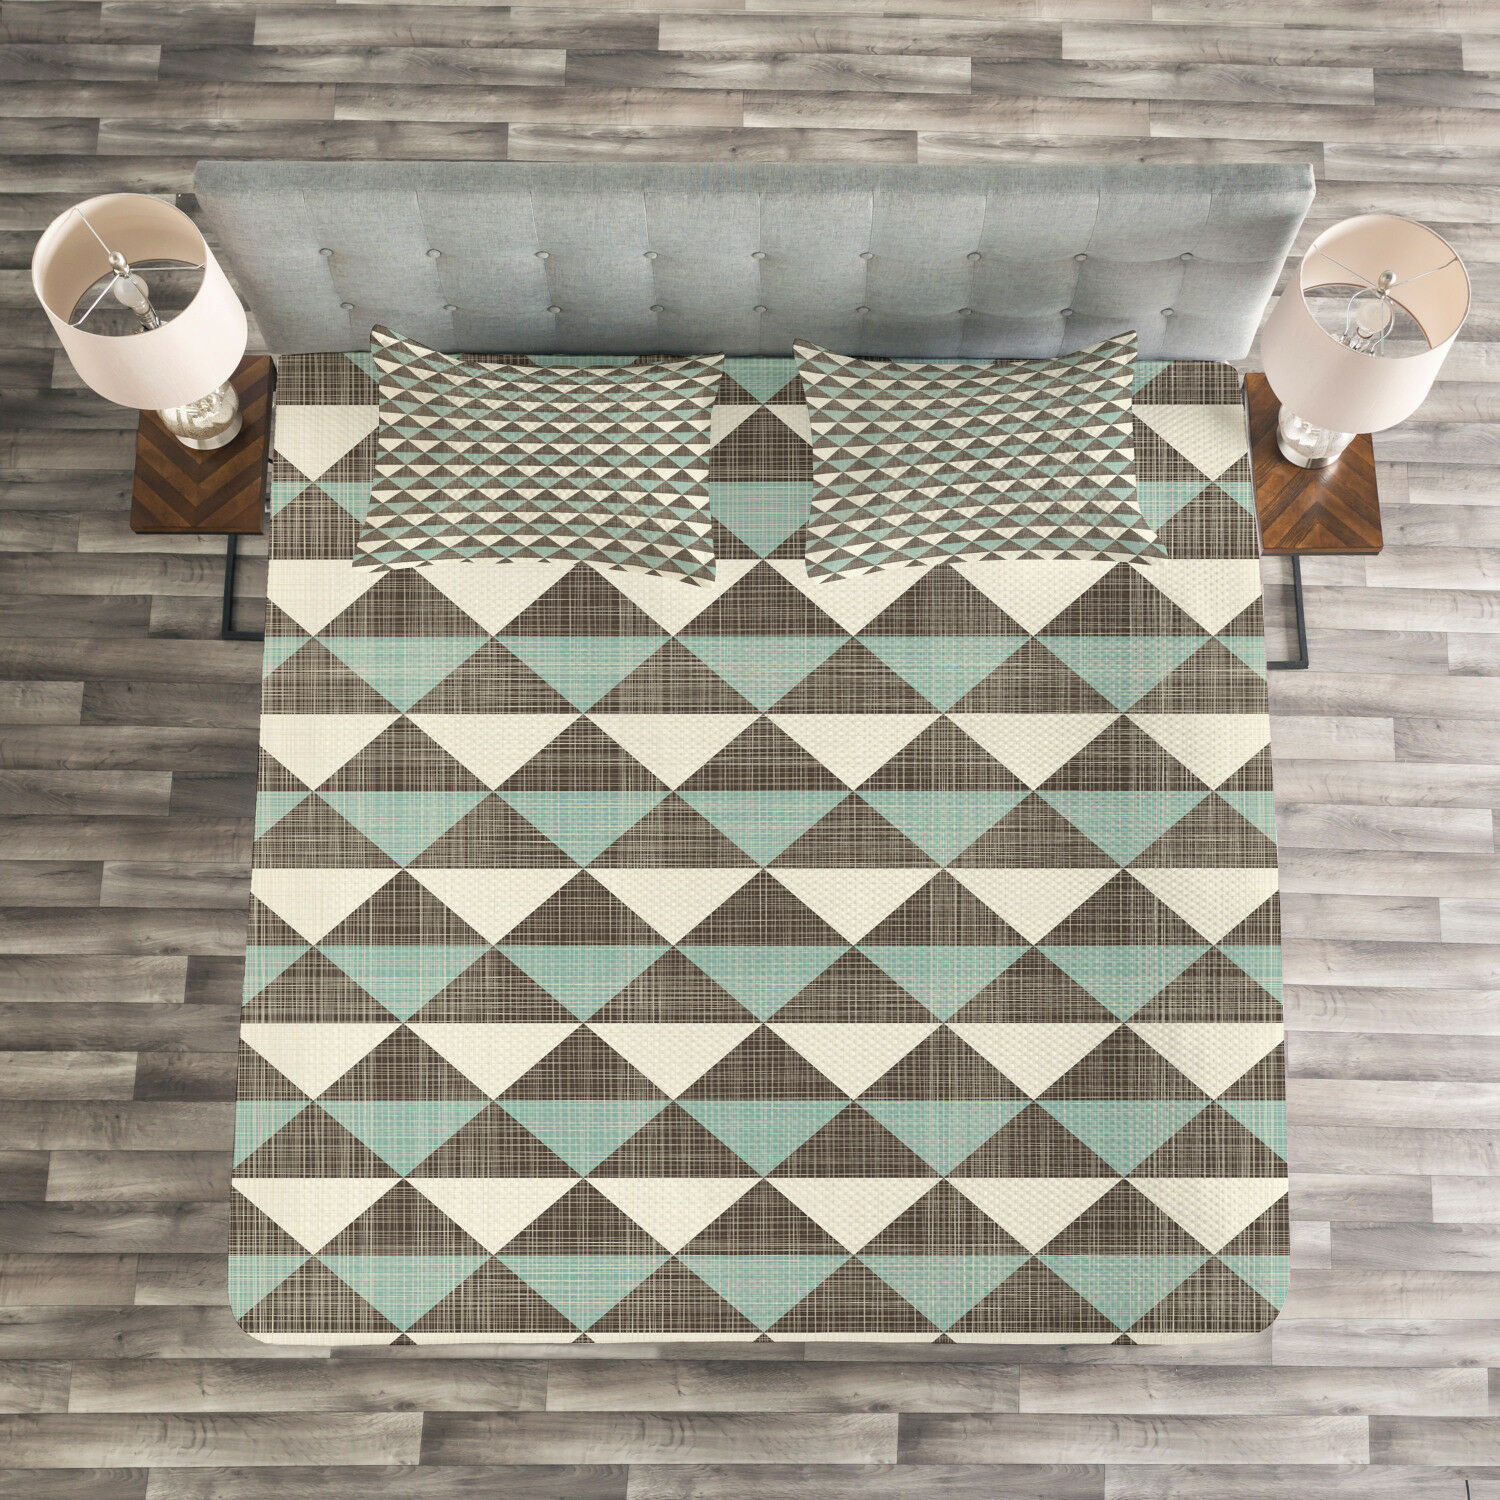 Geometric Quilted Bedspread & Pillow Shams Set, Cubism Triangles Print